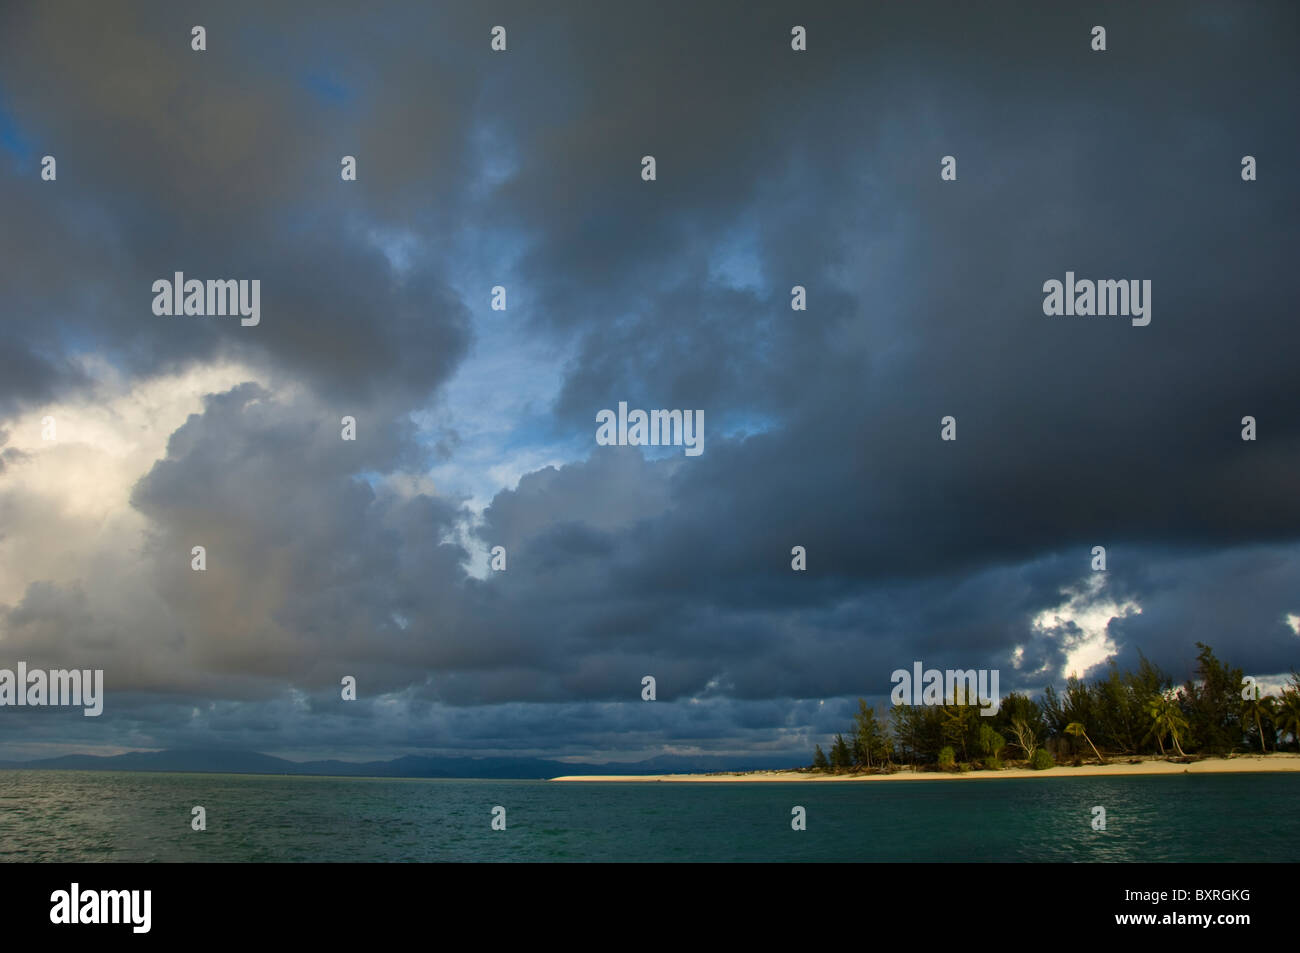 Rainclouds over island, view from boat, Island of Mantanani, South China Sea, East Malaysia. - Stock Image